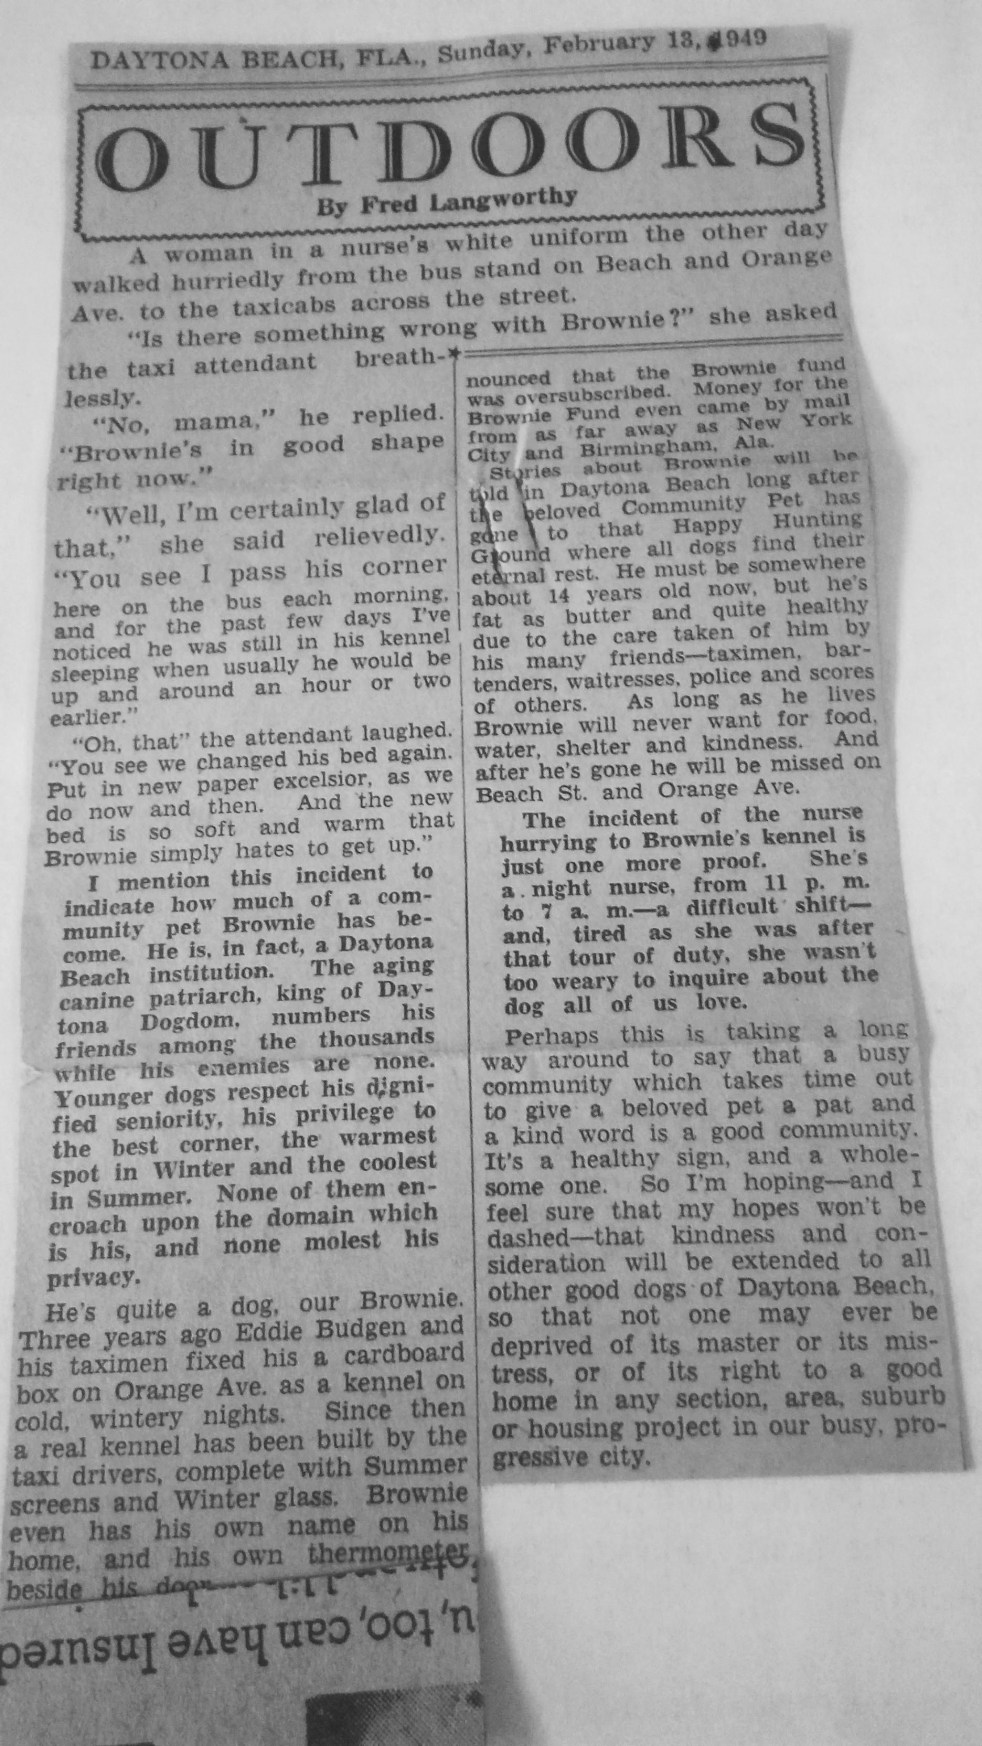 Fred Langworthy writes another article about Brownie. It's 1949 and Brownie has become more than a stray dog.